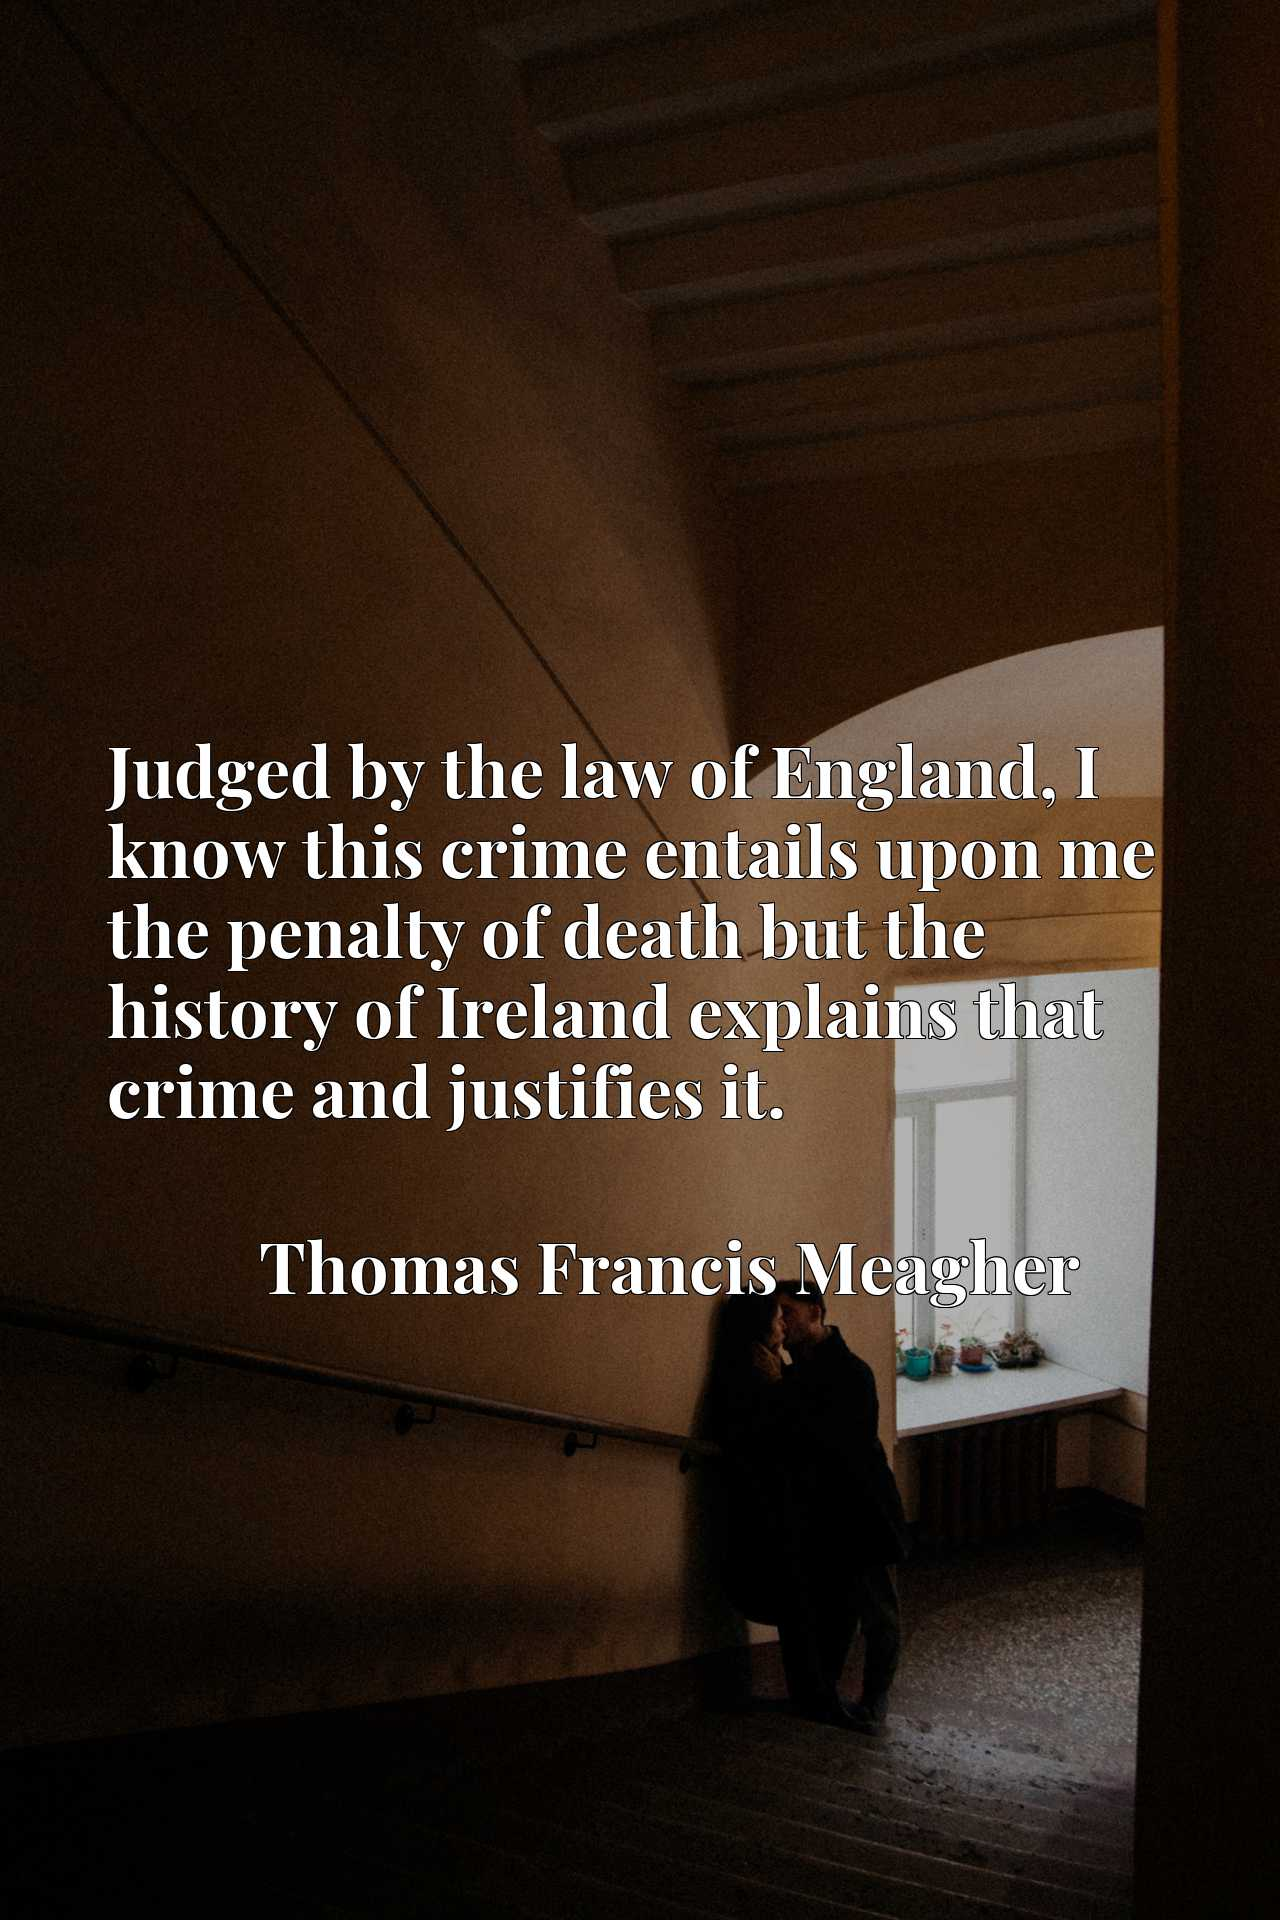 Judged by the law of England, I know this crime entails upon me the penalty of death but the history of Ireland explains that crime and justifies it.